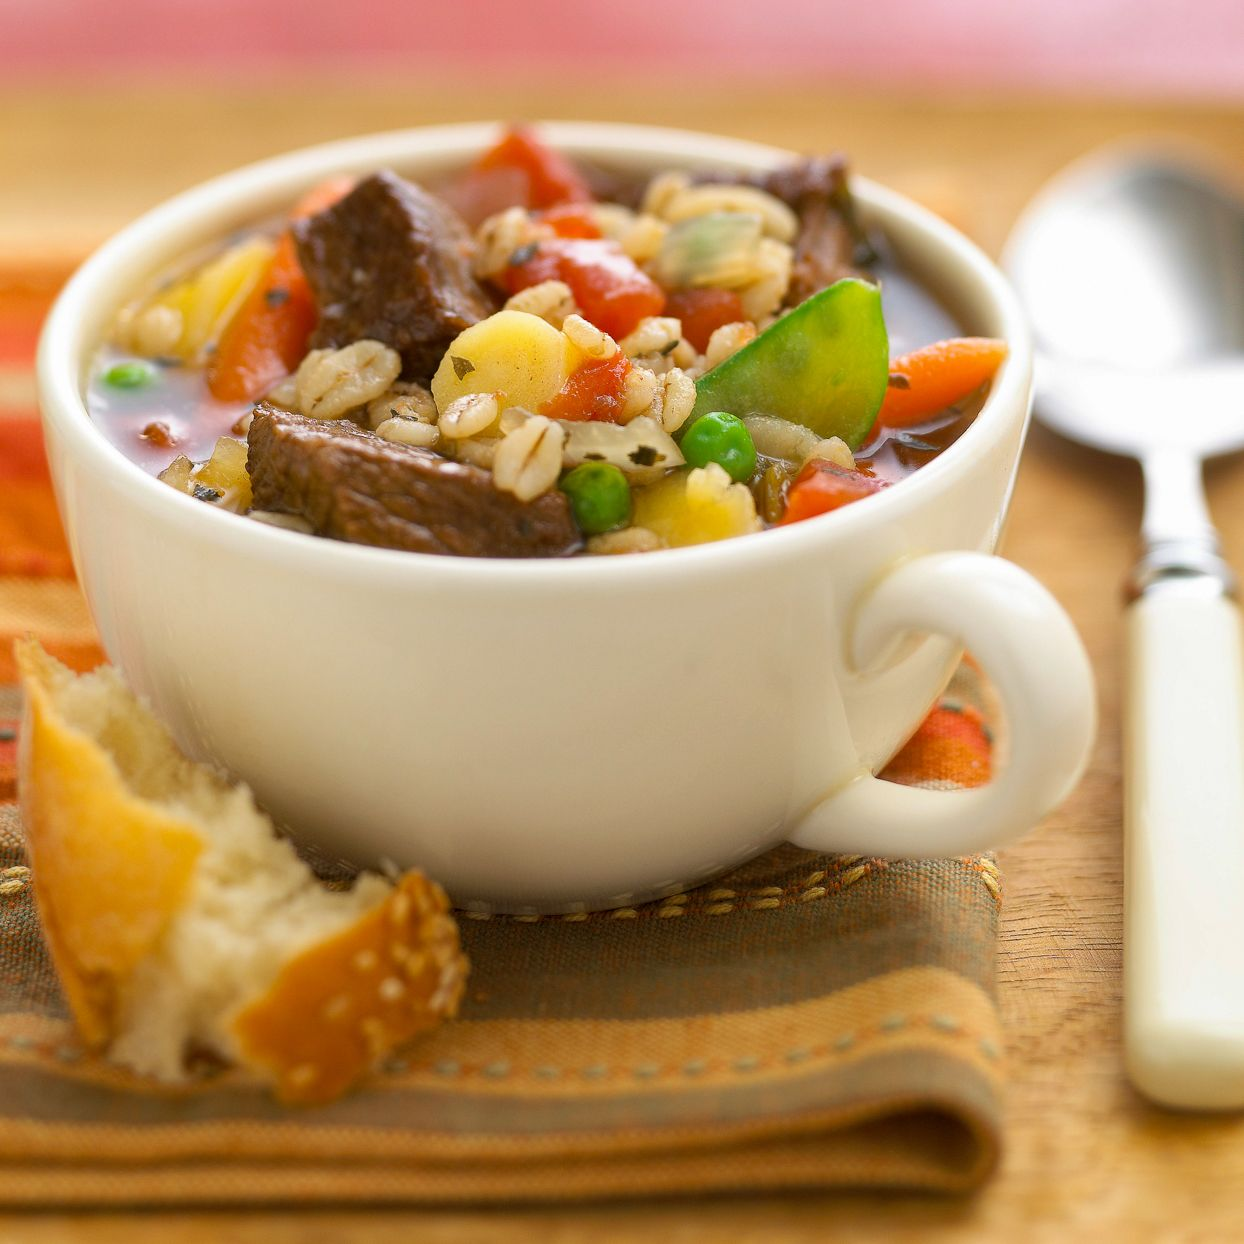 2fa40528c135aaa50448a06b1c36feaa - Roast Vegetable Soup Better Homes And Gardens